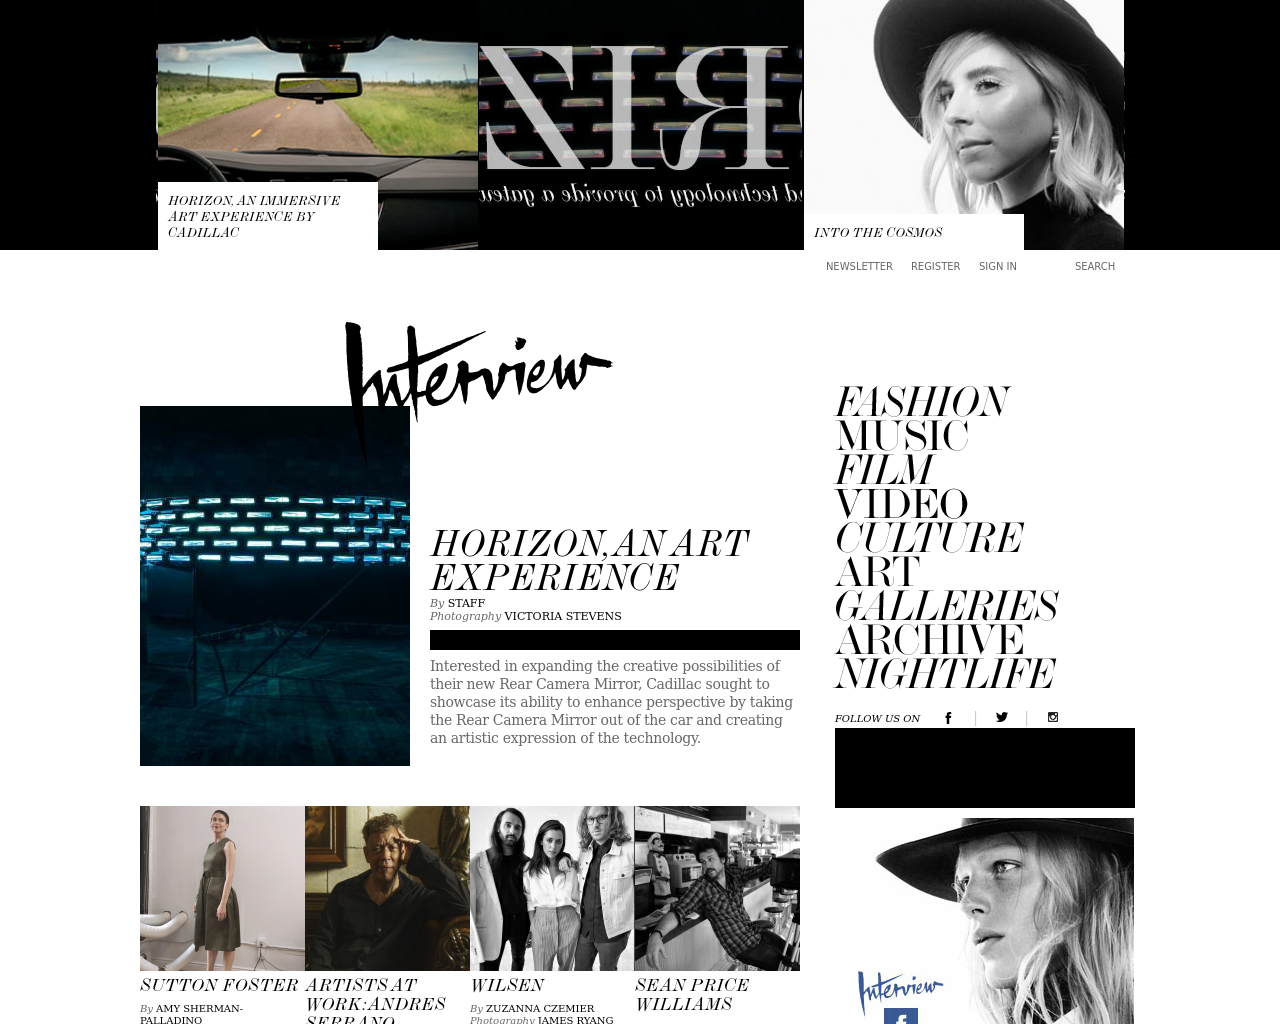 InterviewMagazine-Advertising-Reviews-Pricing